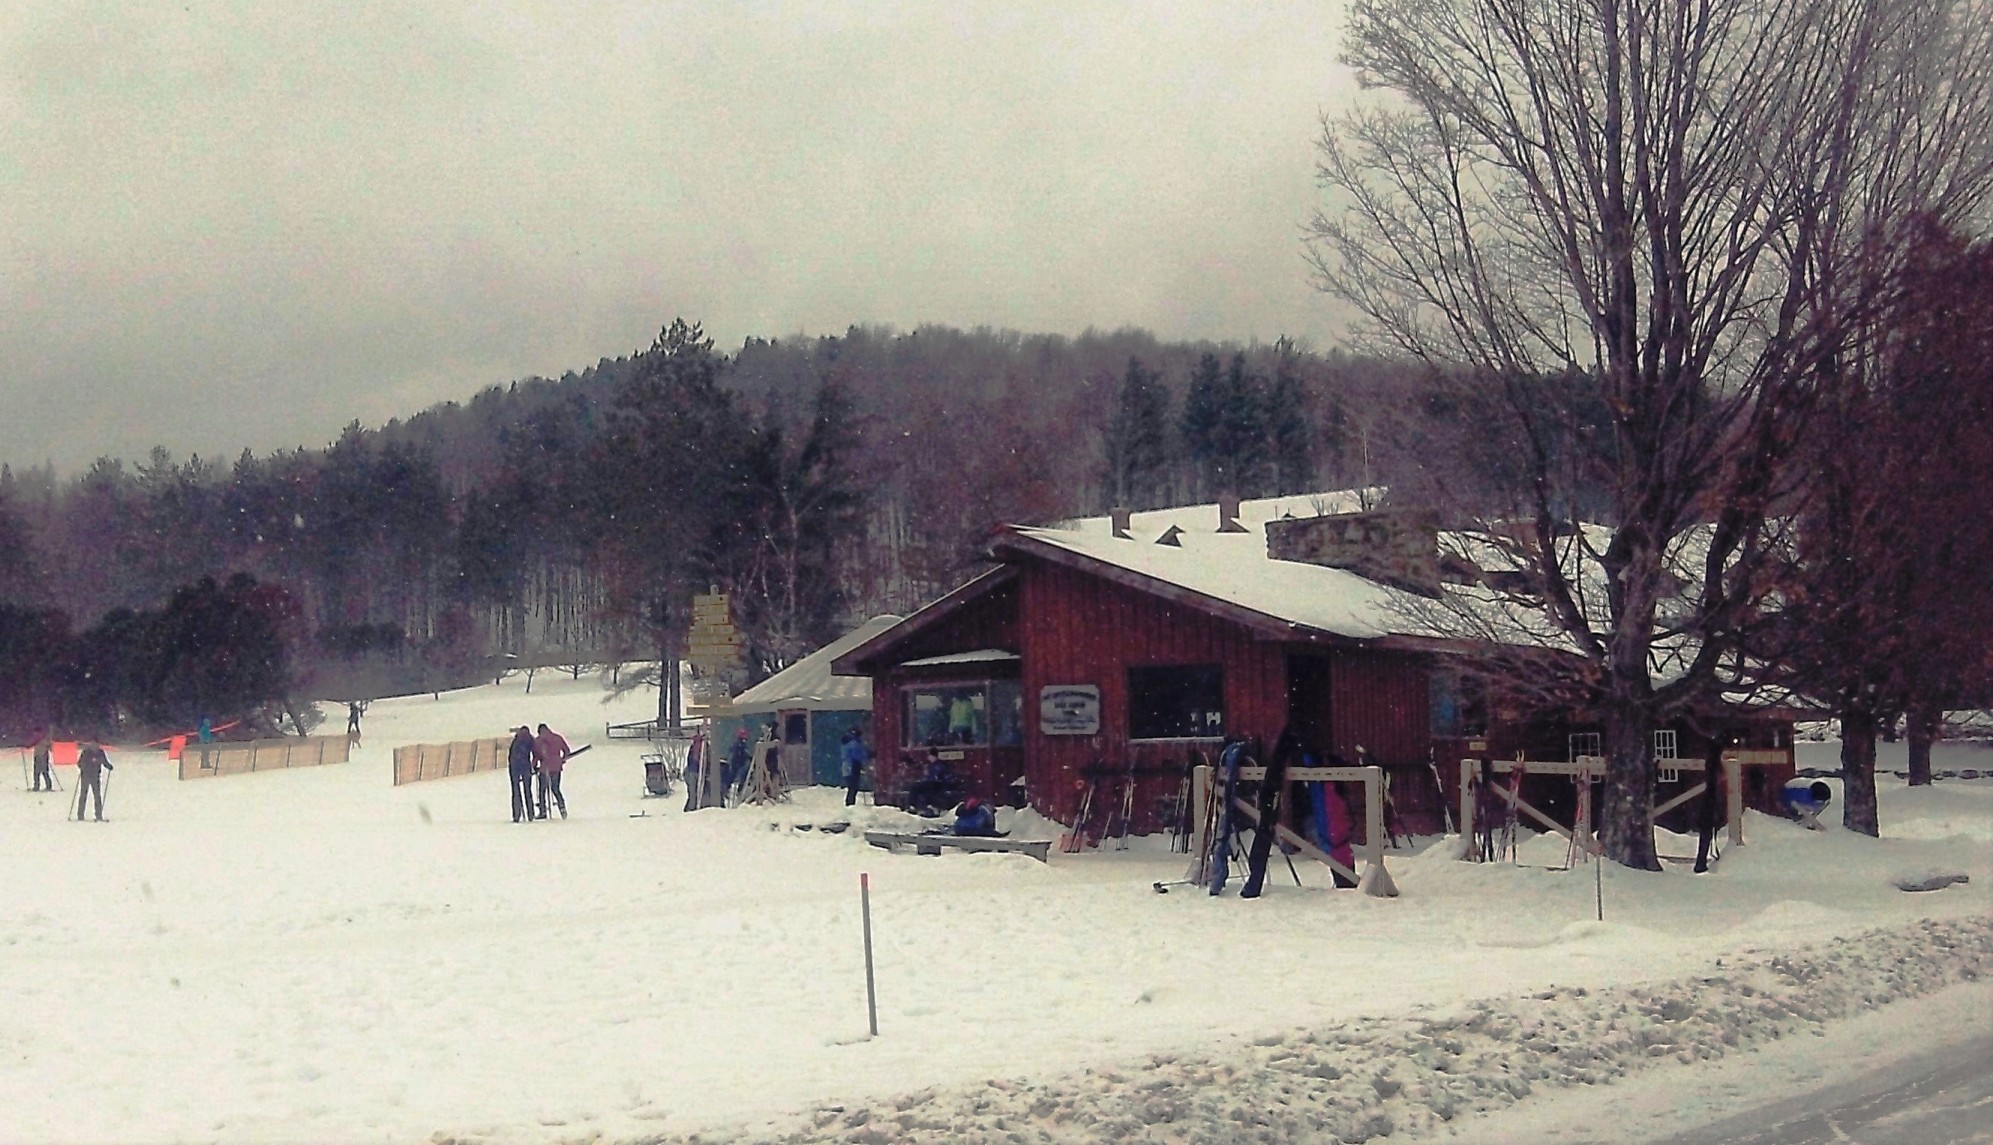 Check out what Stowe offers for Nordic Skiers